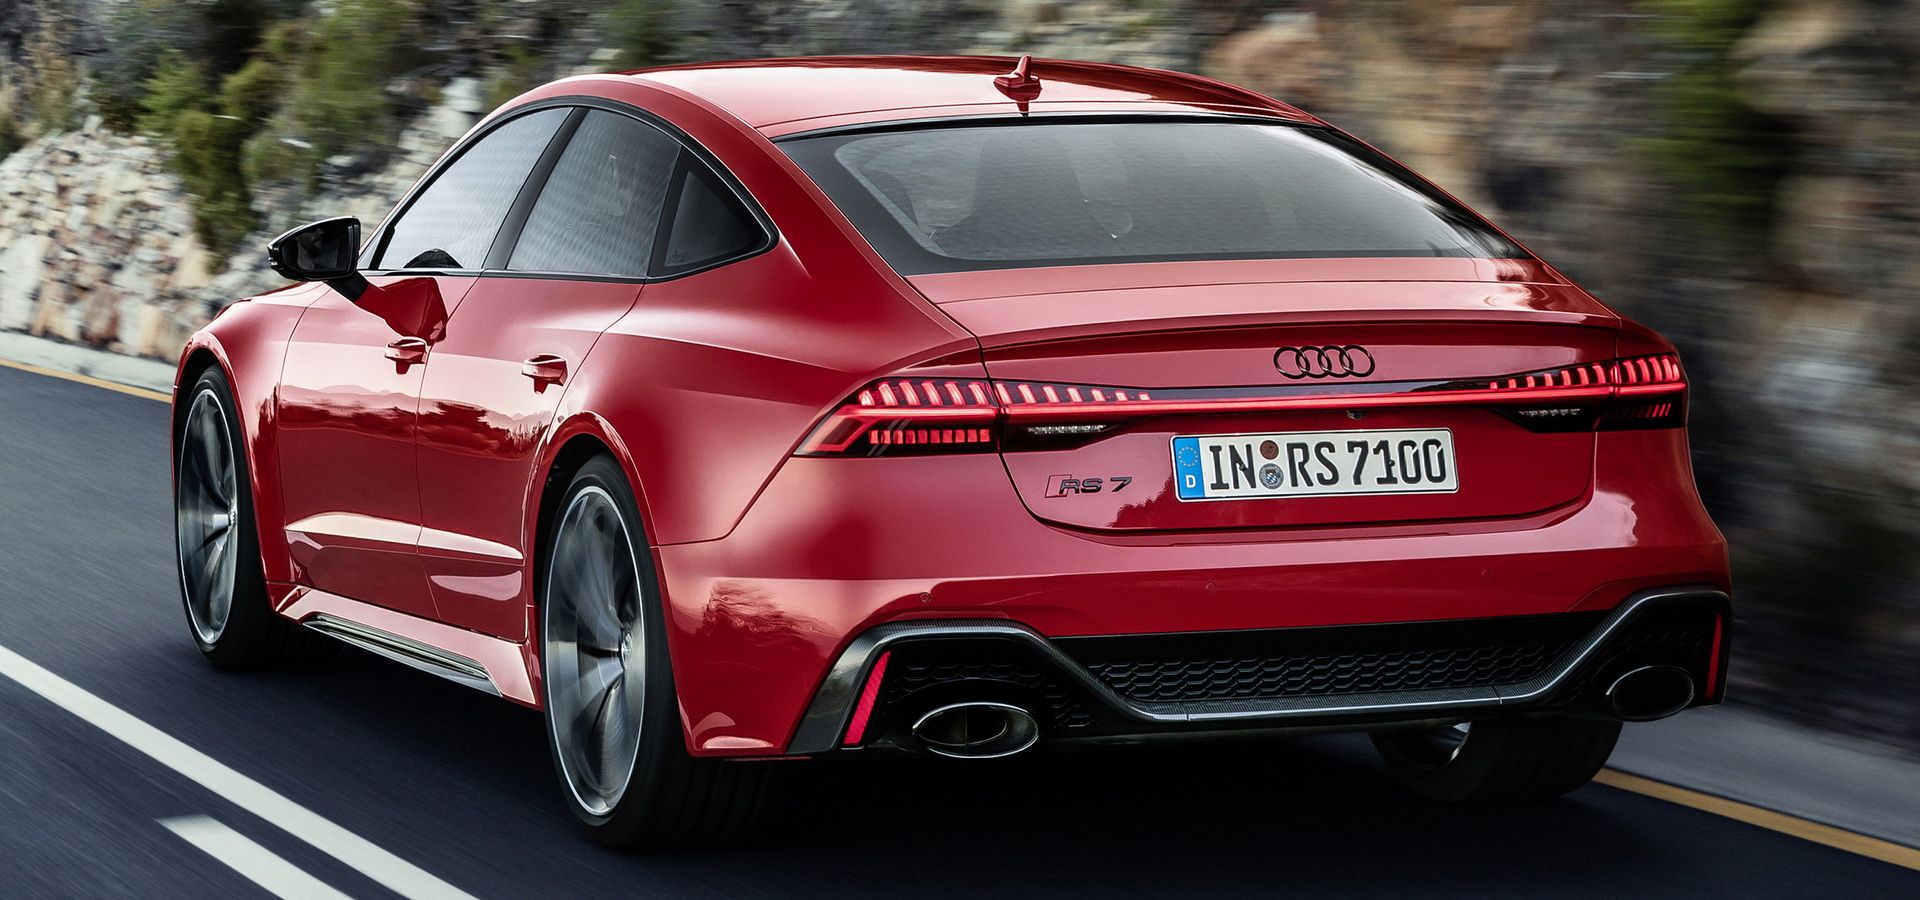 America The 2021 Audi Rs7 Will Give You 591 Hp In Return For 114 000 Carscoops